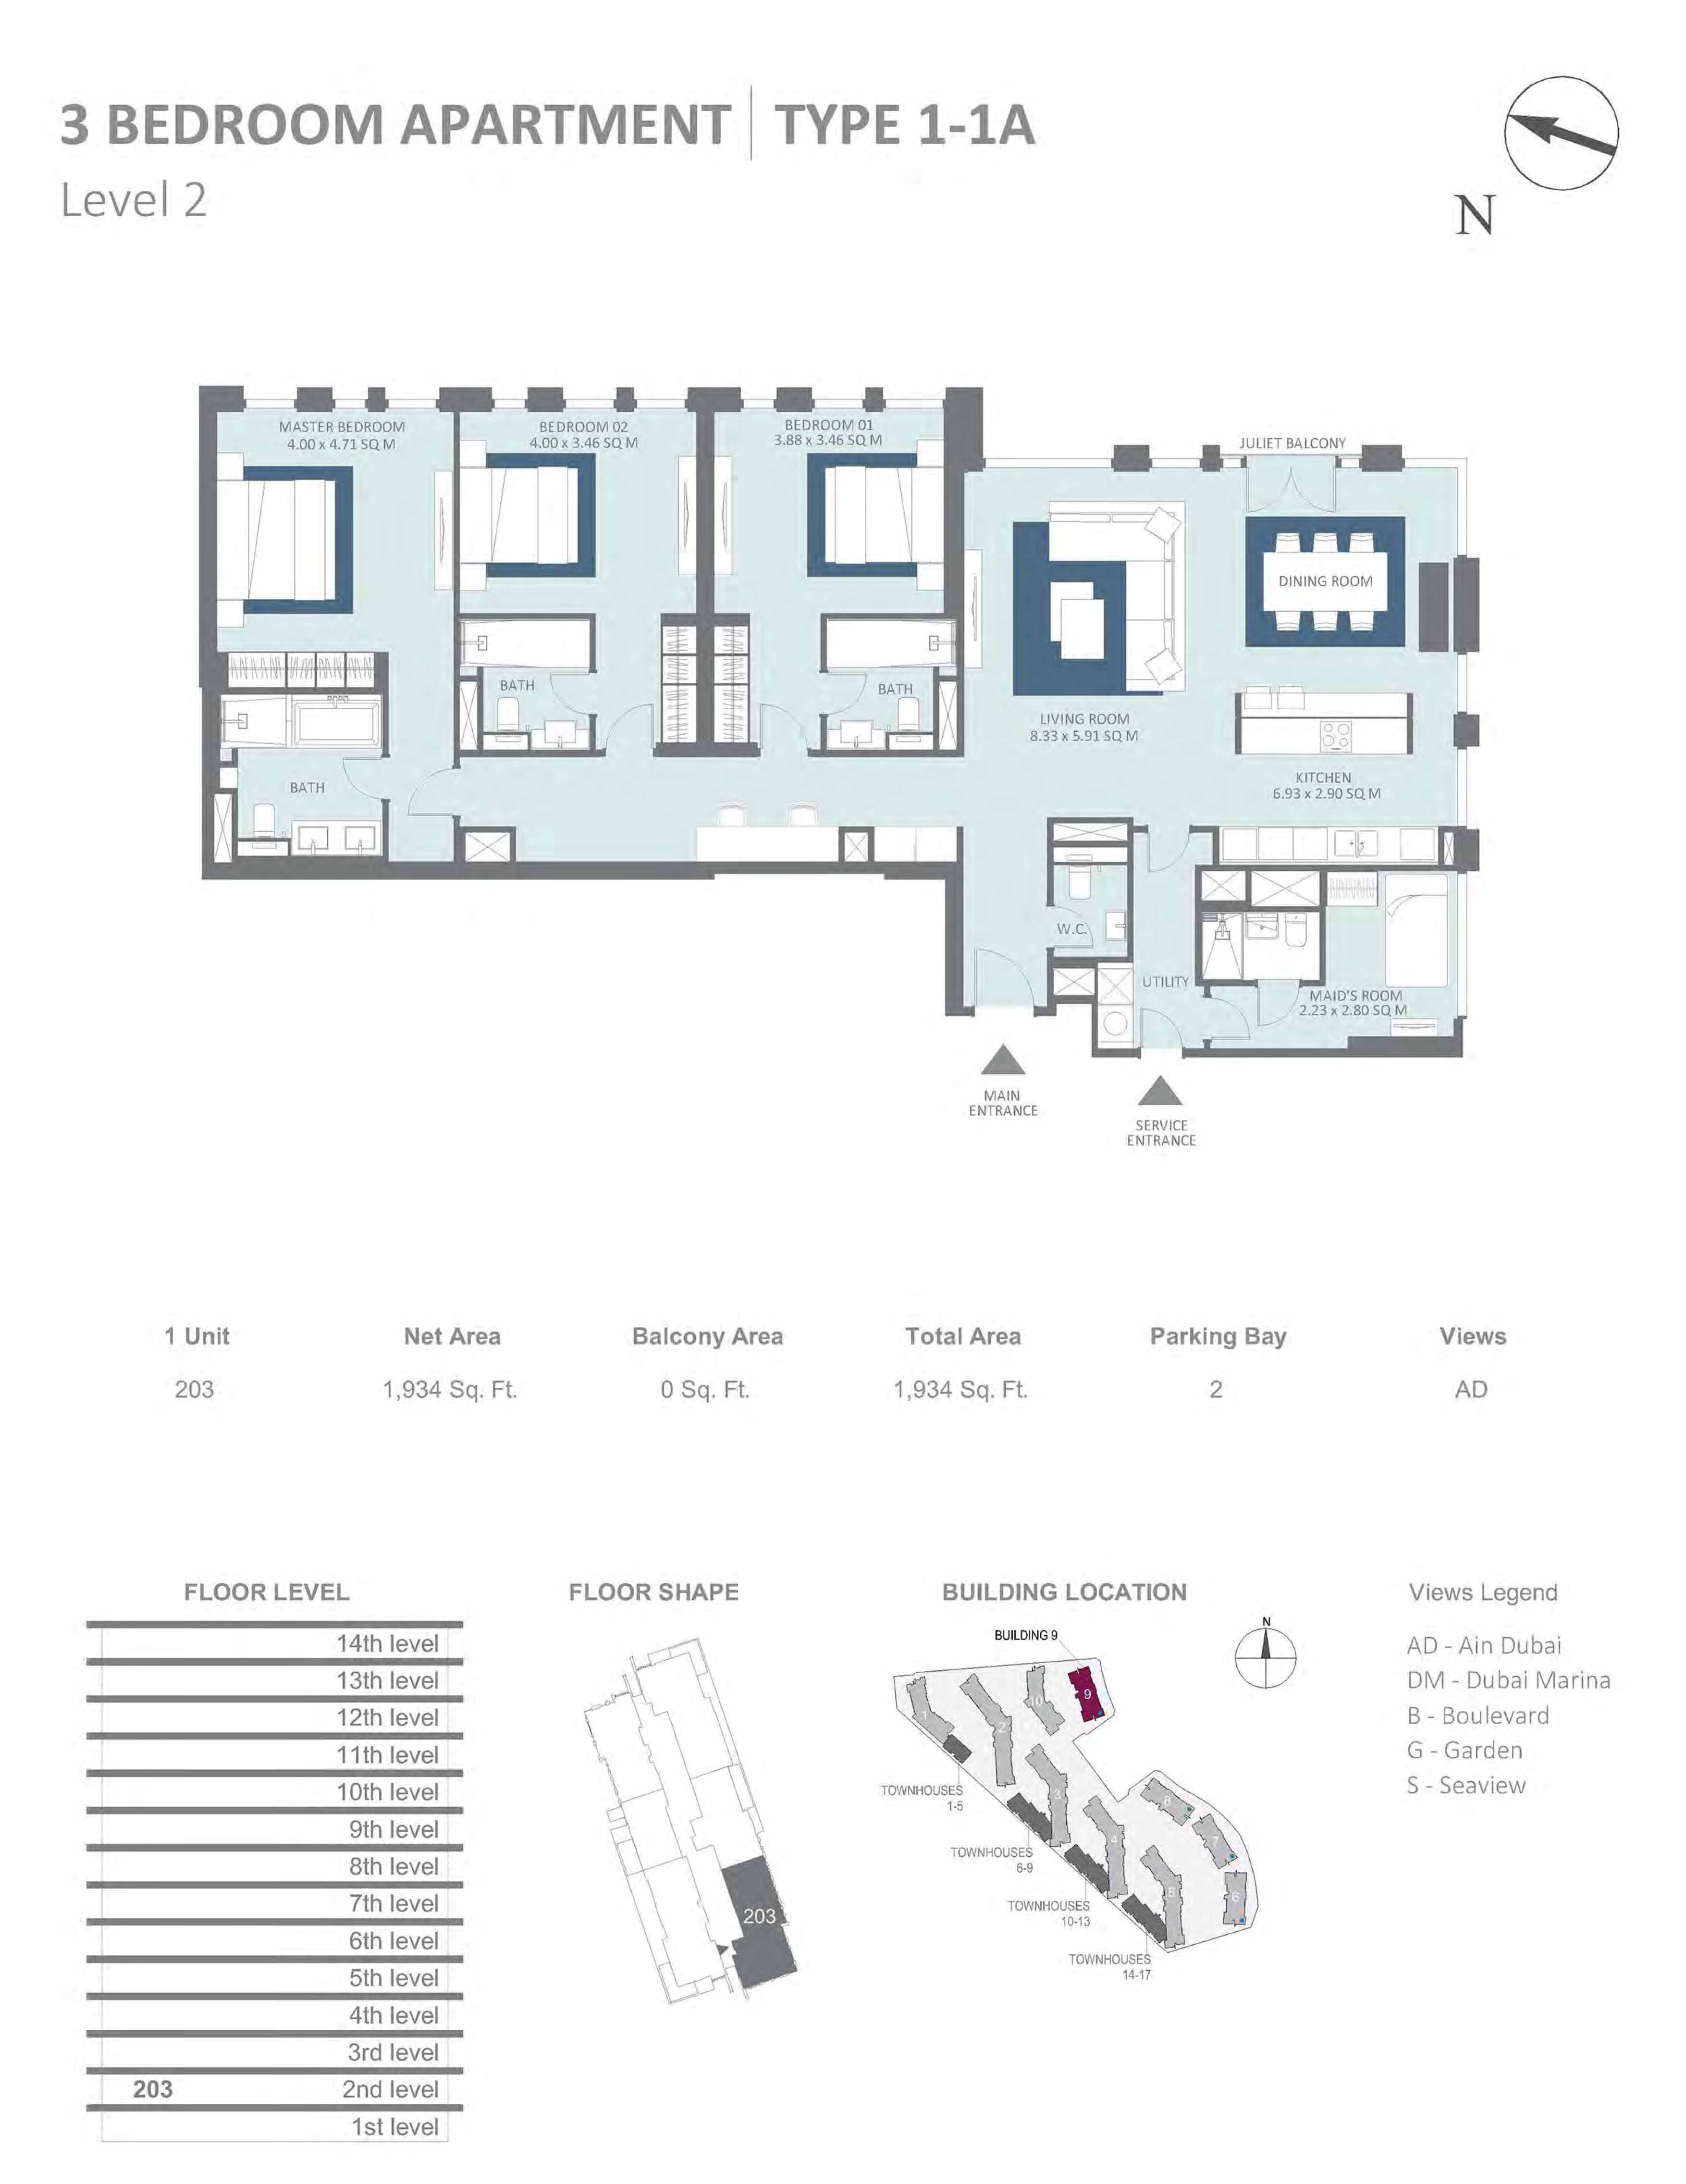 Building 9 - 3 Bedroom Type 1-1A, Level 2 Size 1934  sq. ft.